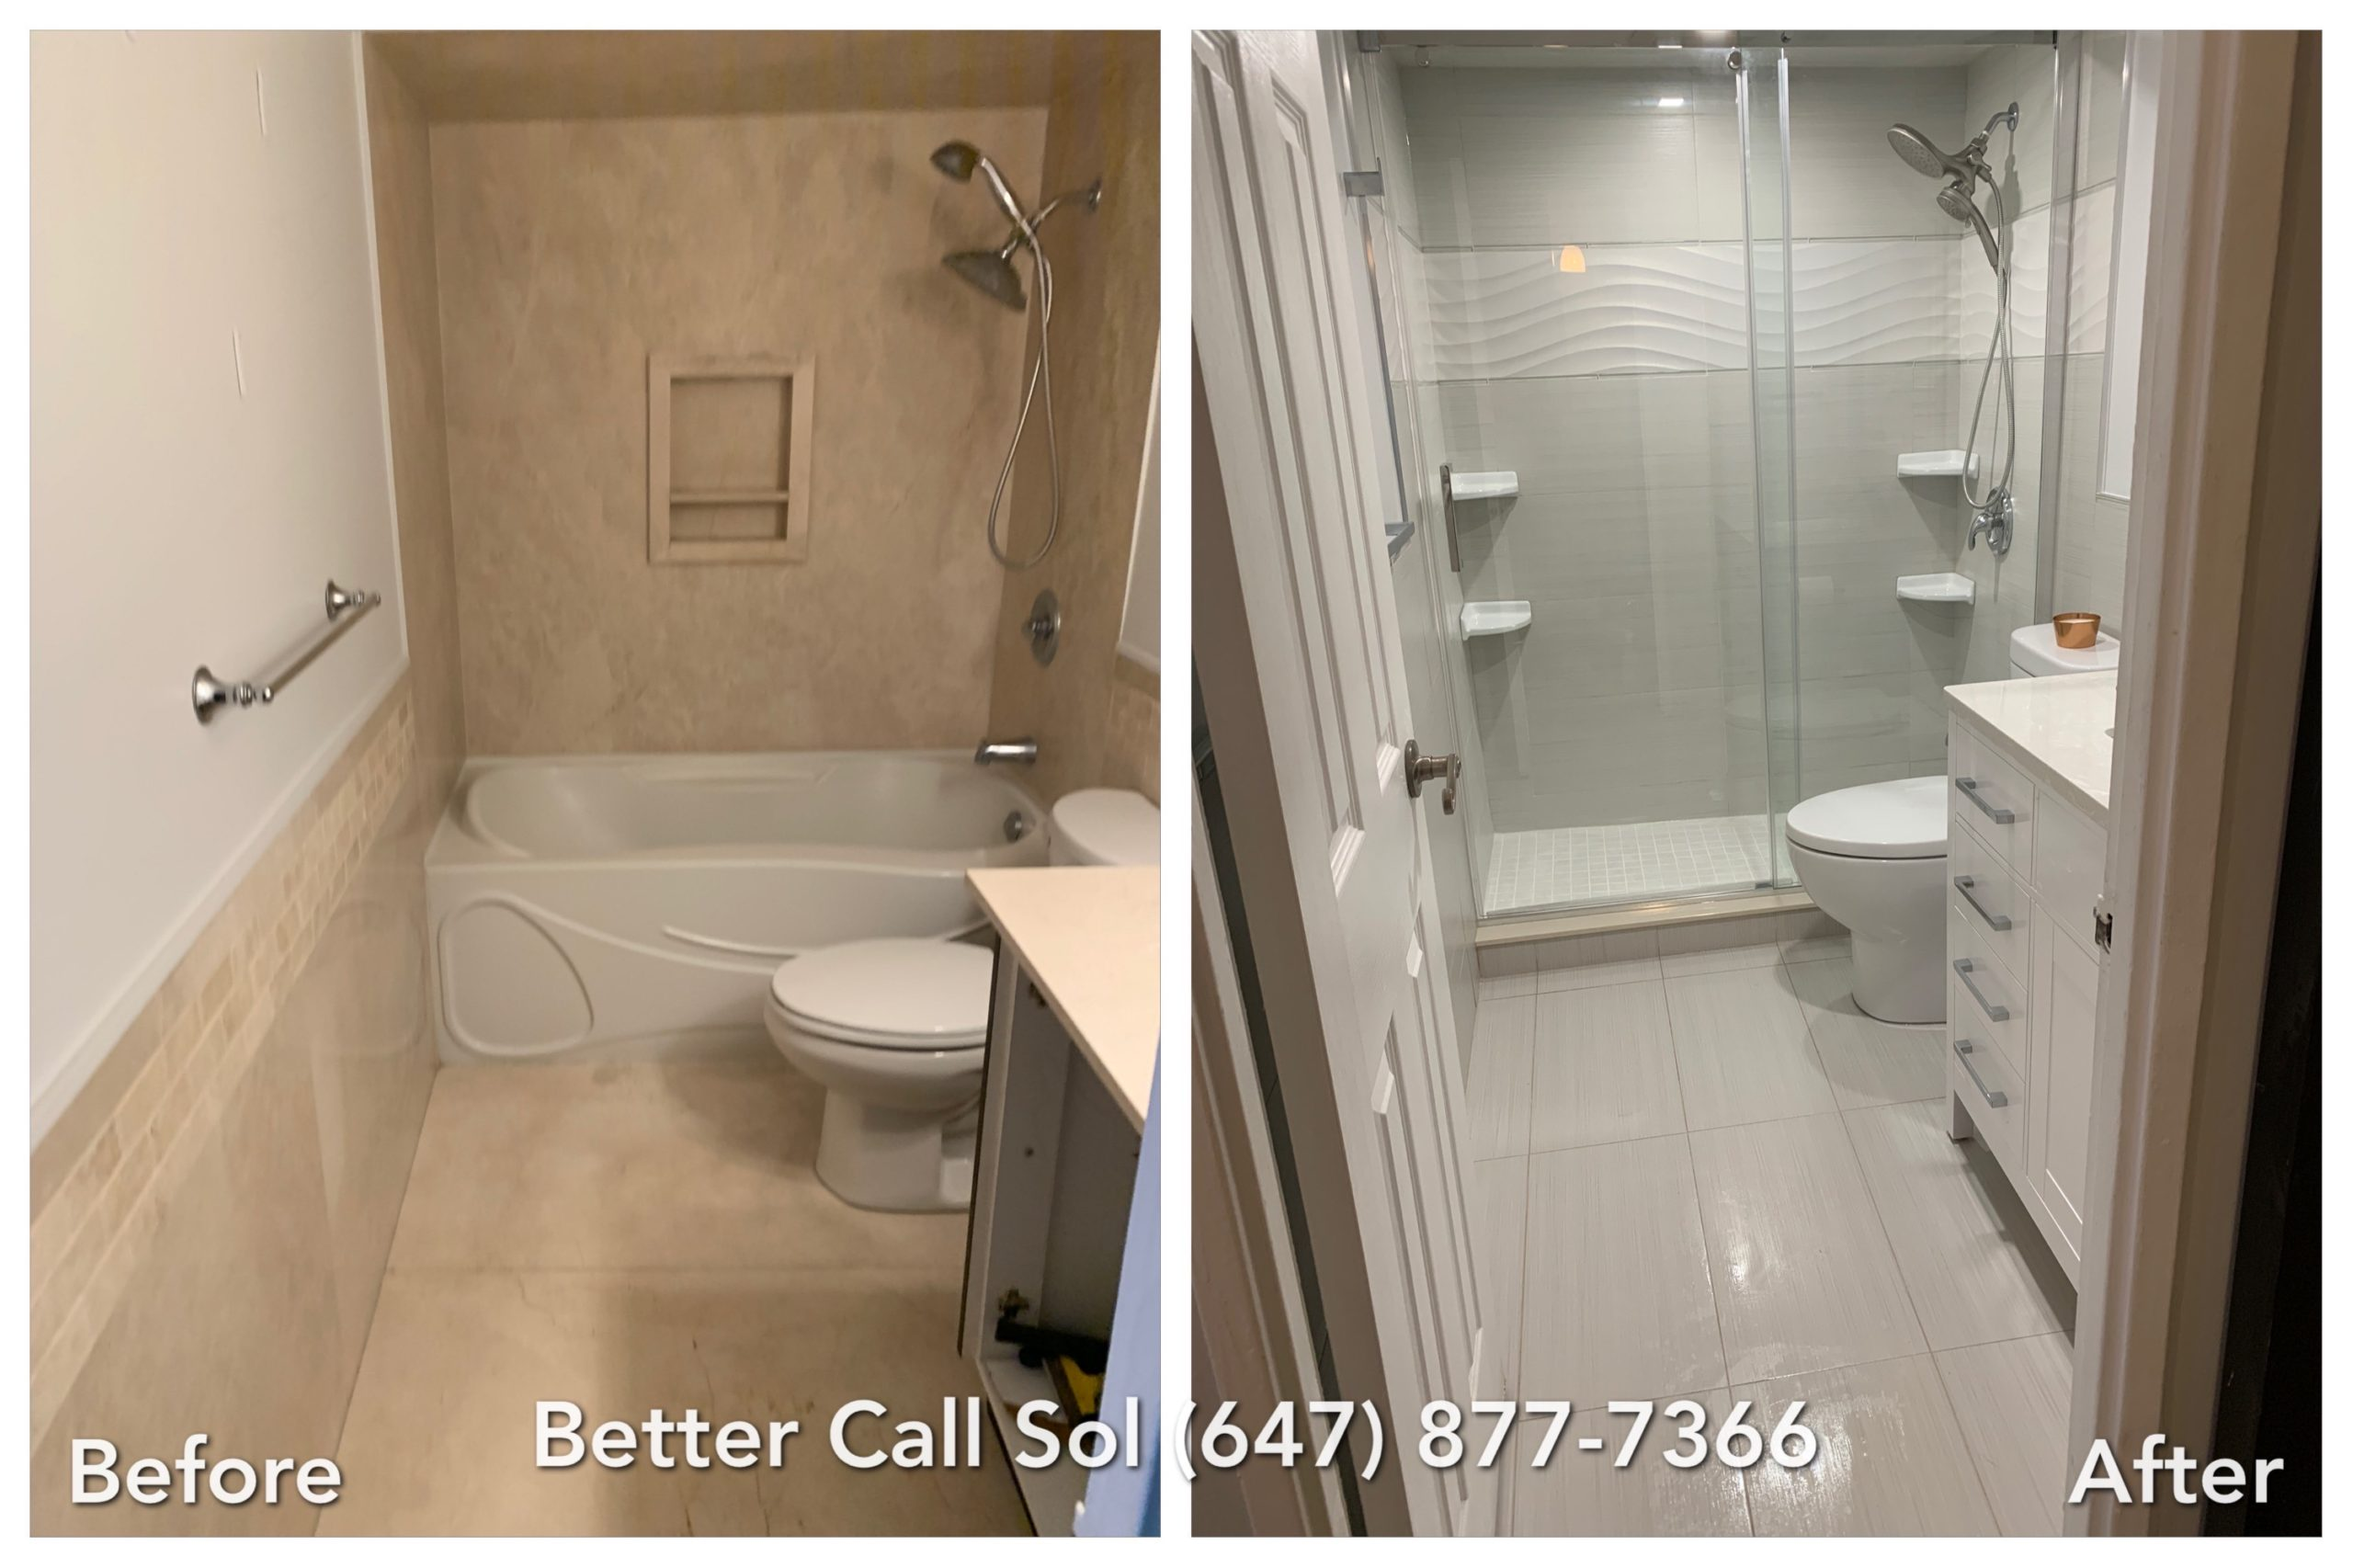 Bathroom Renovation Cost For 2021, How Much Does It Cost To Redo A Small Bathroom